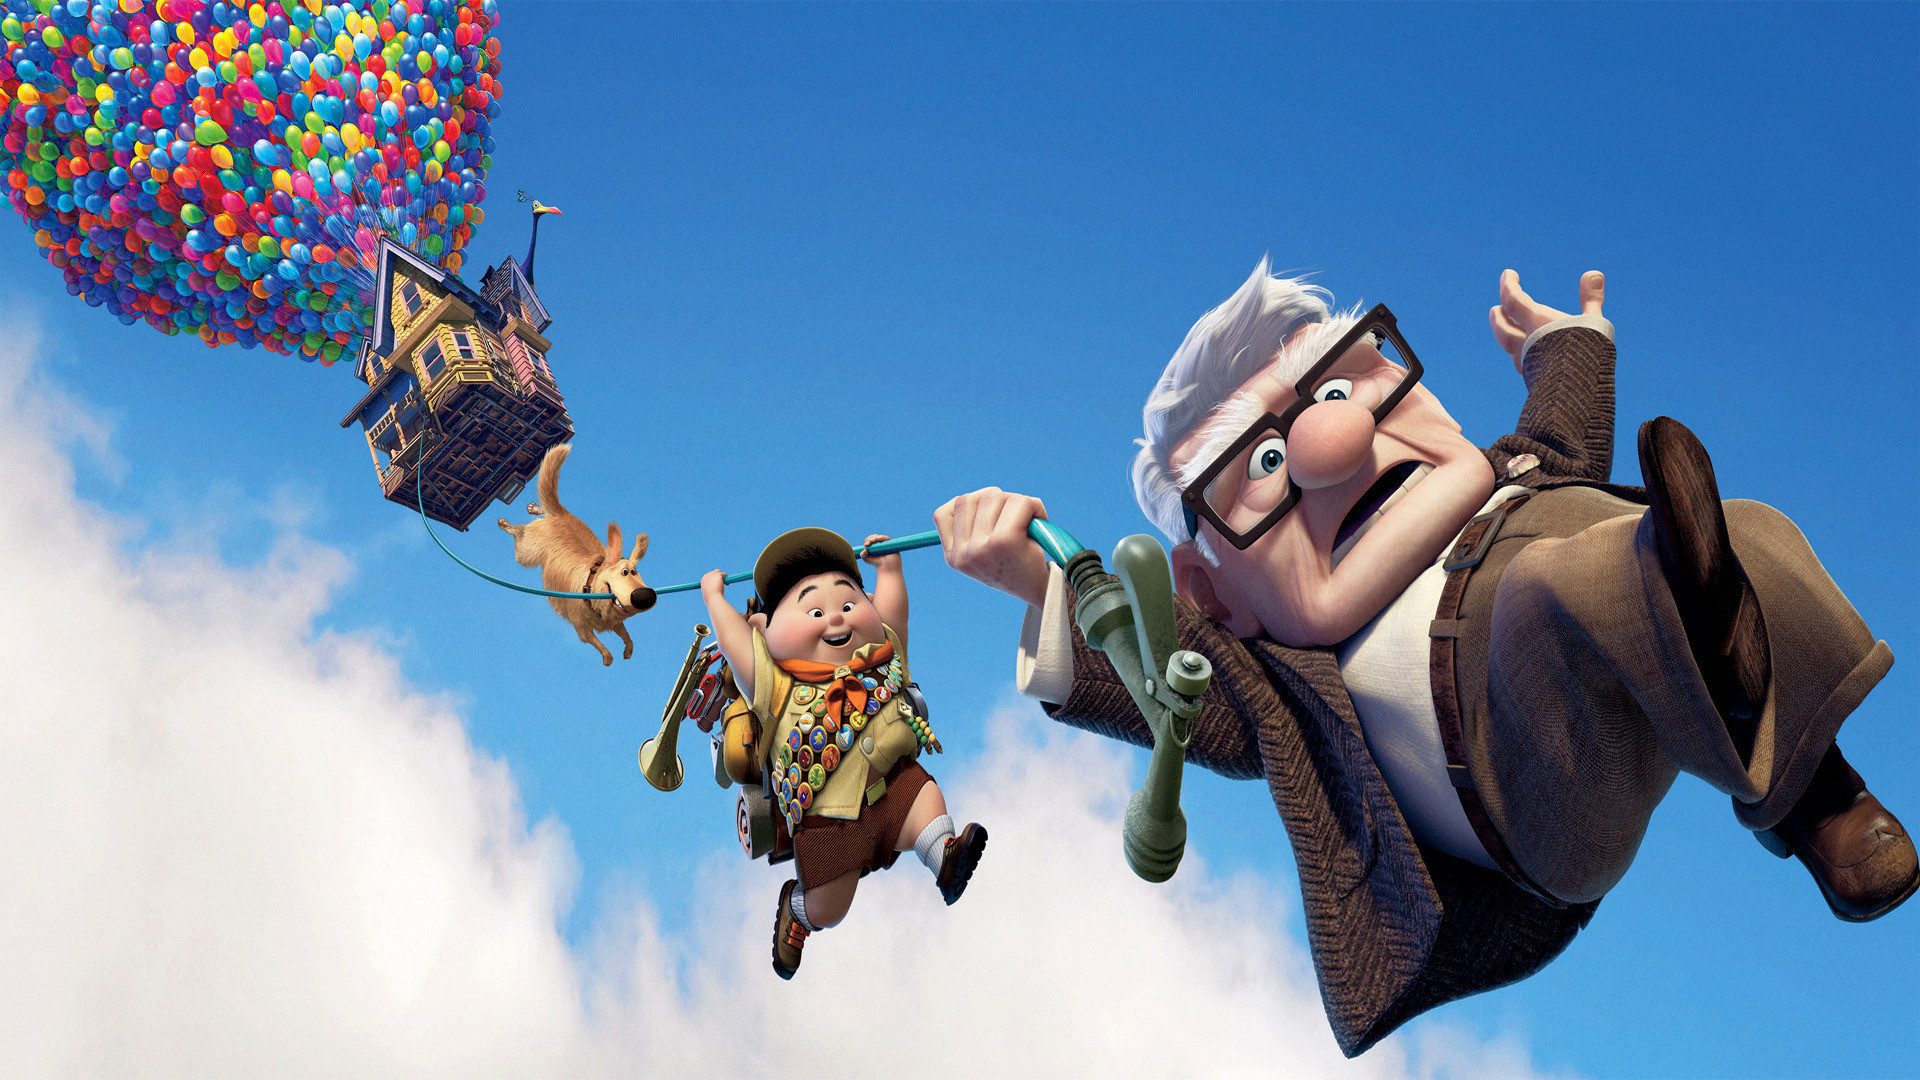 1920x1080 Pixar's UP Dual Monitor HD